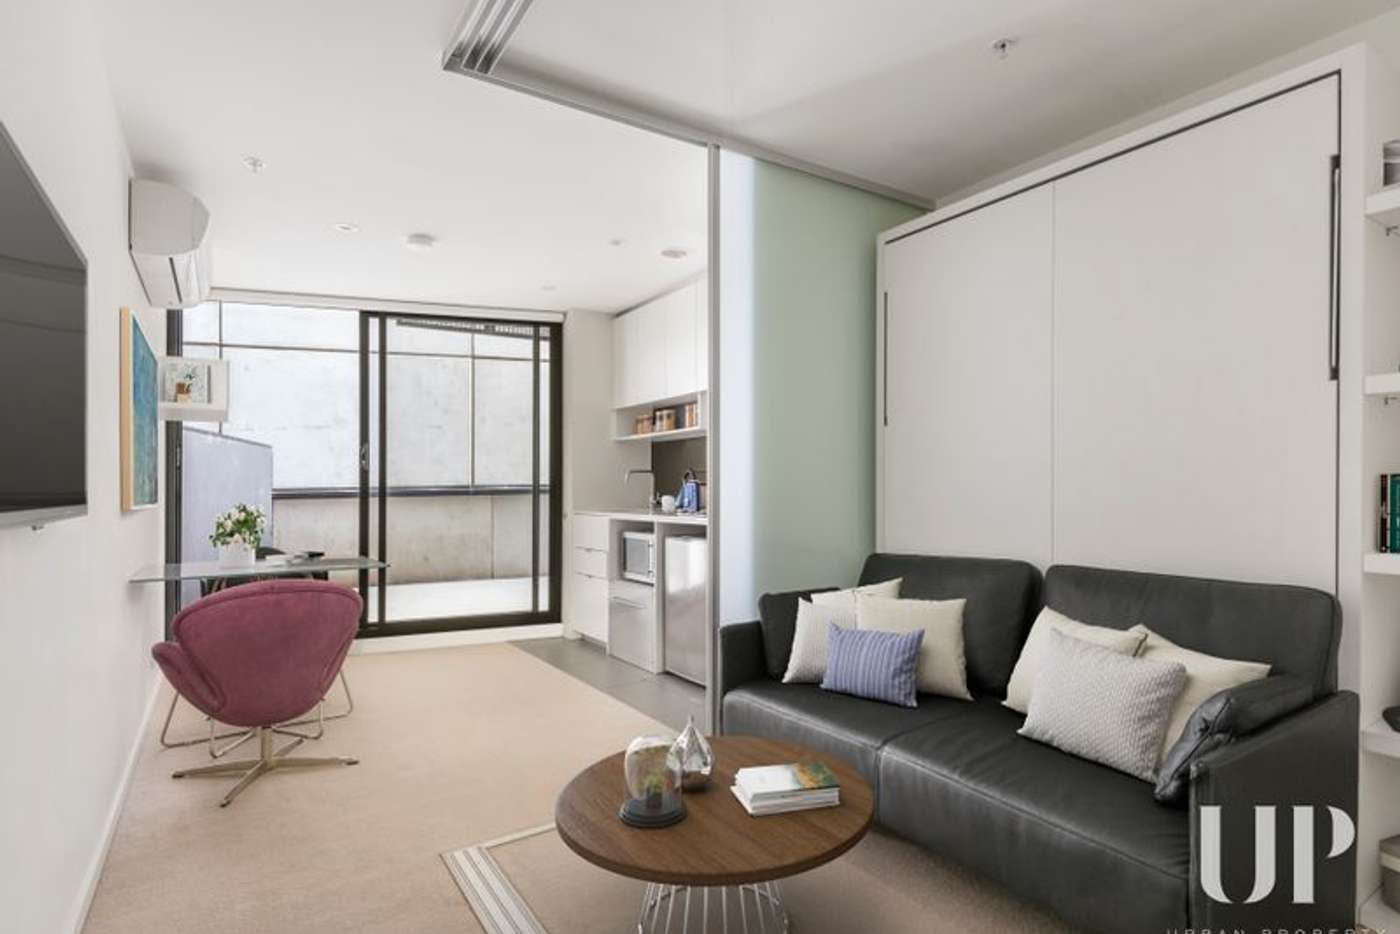 Main view of Homely apartment listing, 1602/243 Franklin Street, Melbourne VIC 3000